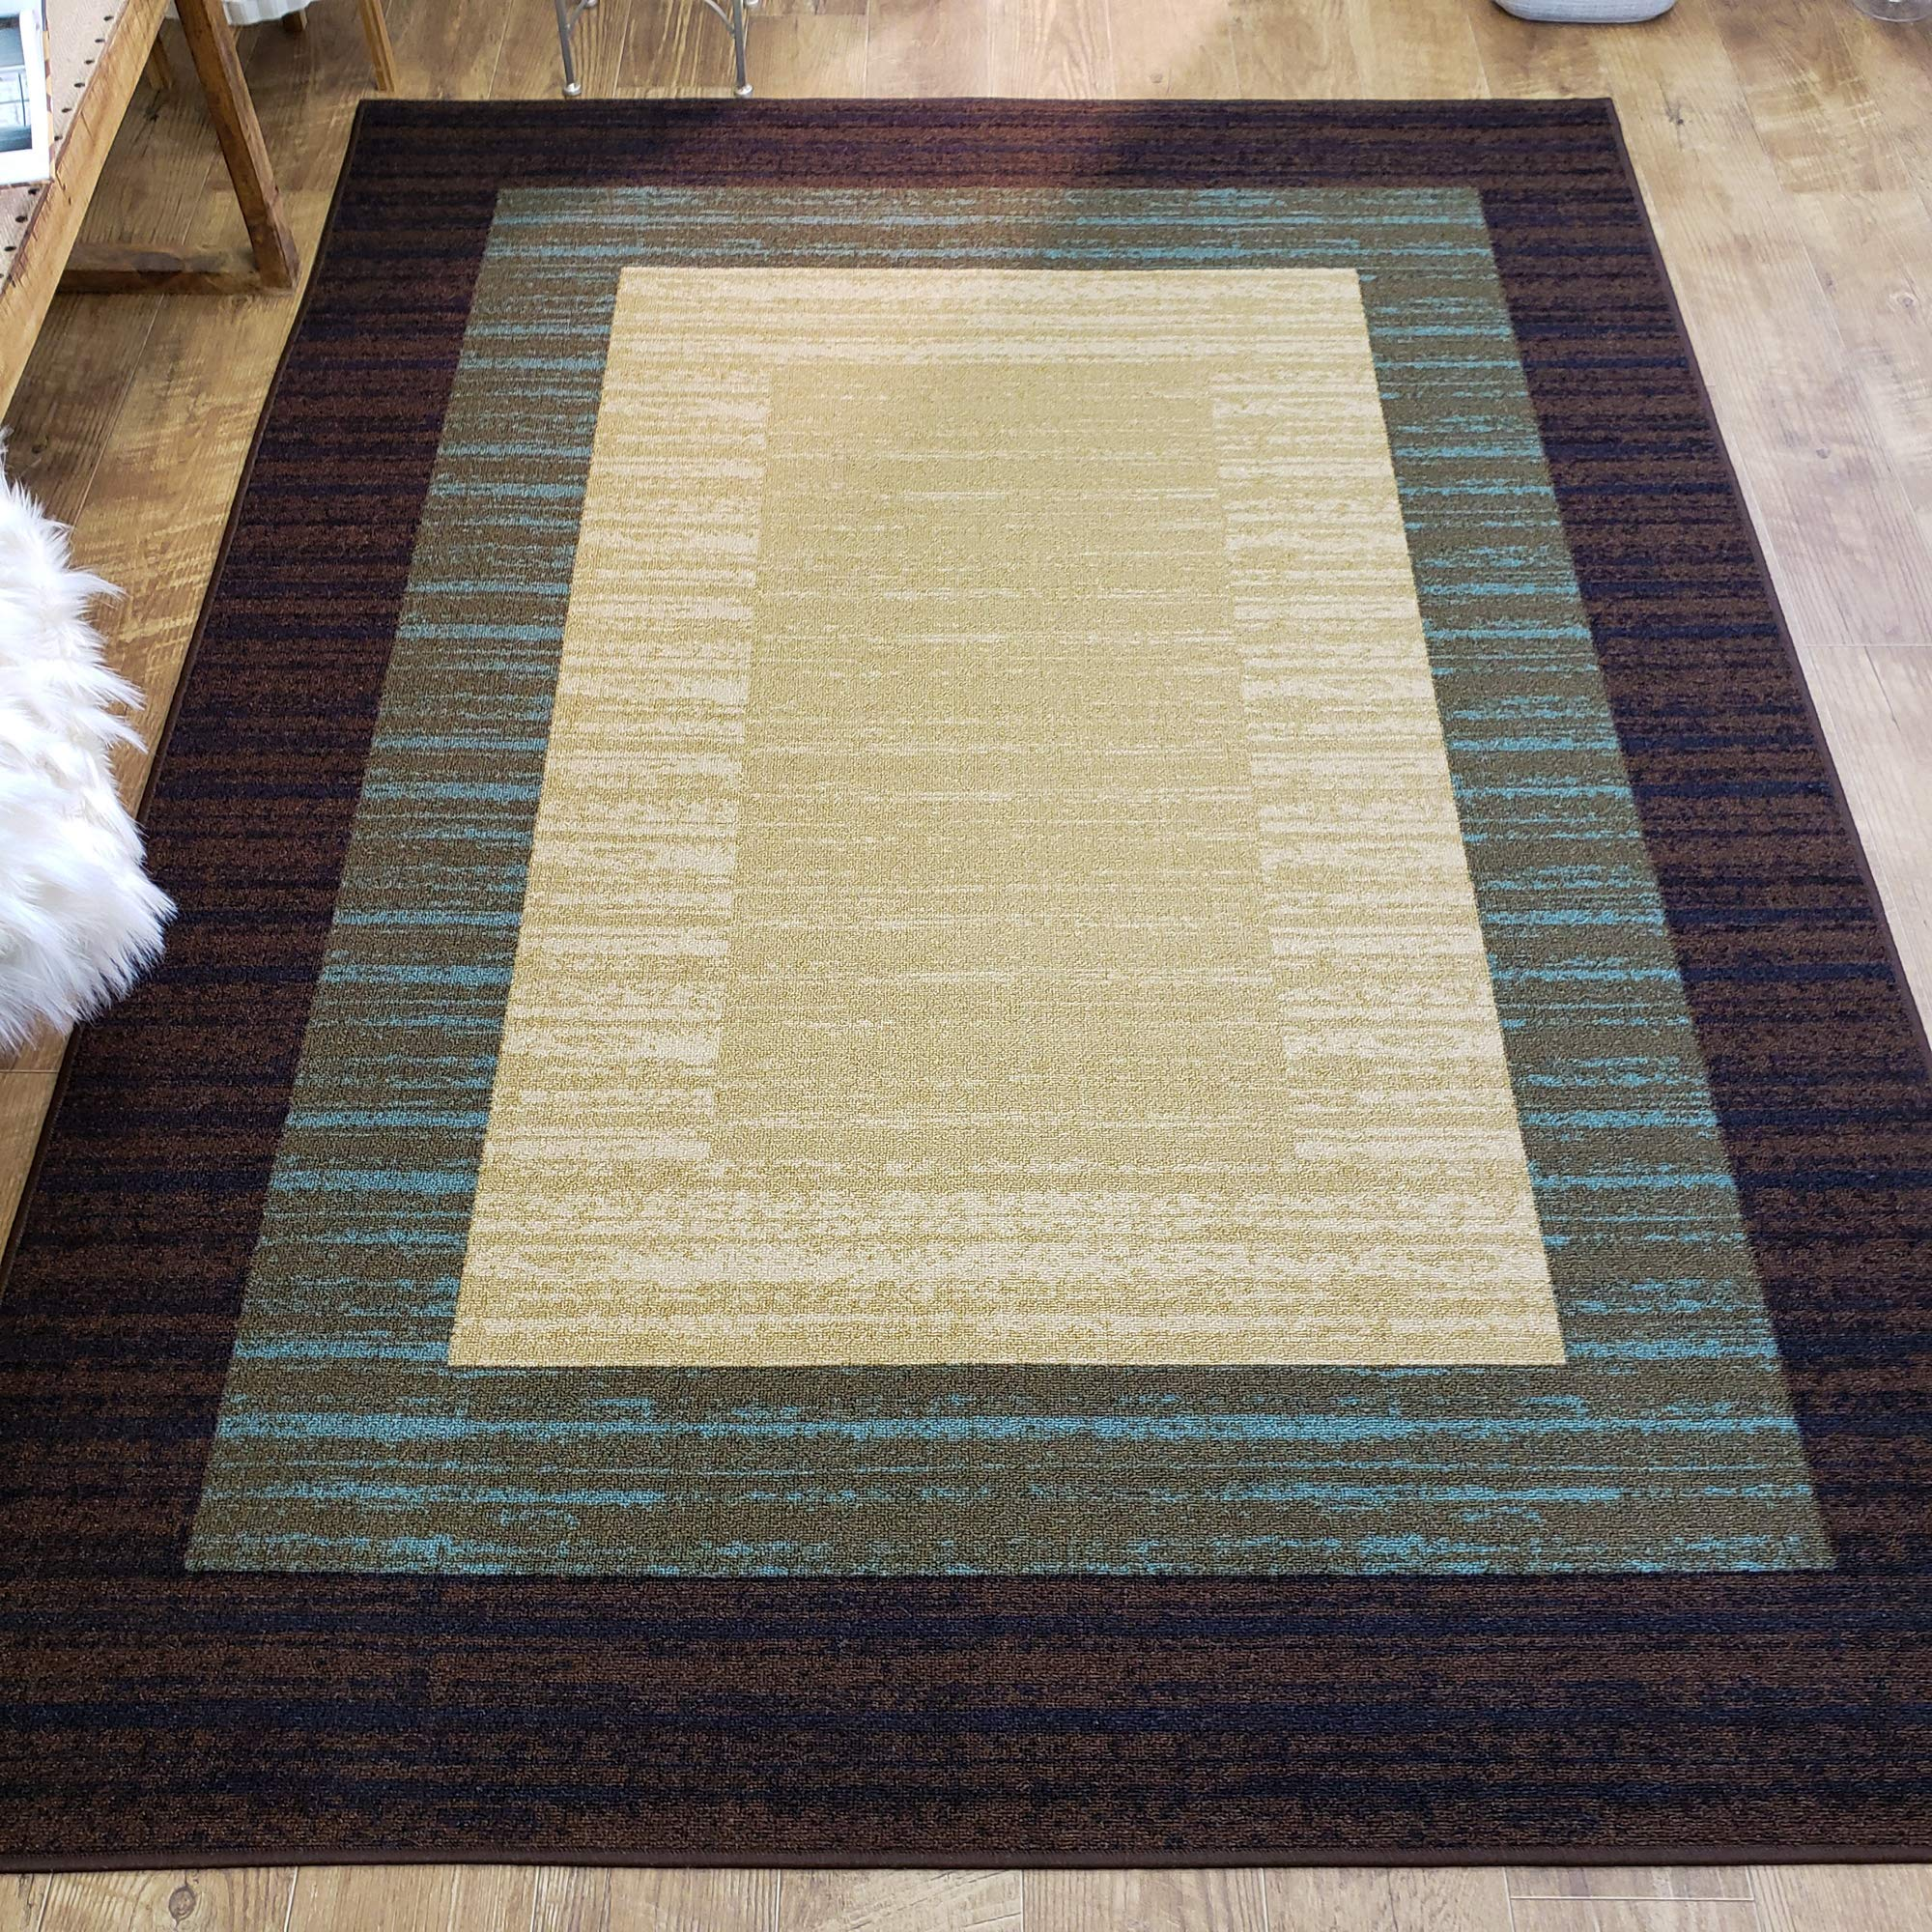 Rubber Backed Area Rug 39 X 58 Inch Brown Beige Border Striped Non Slip Kitchen Rugs And Mats Buy Online In Sri Lanka At Desertcart Lk Productid 14789756